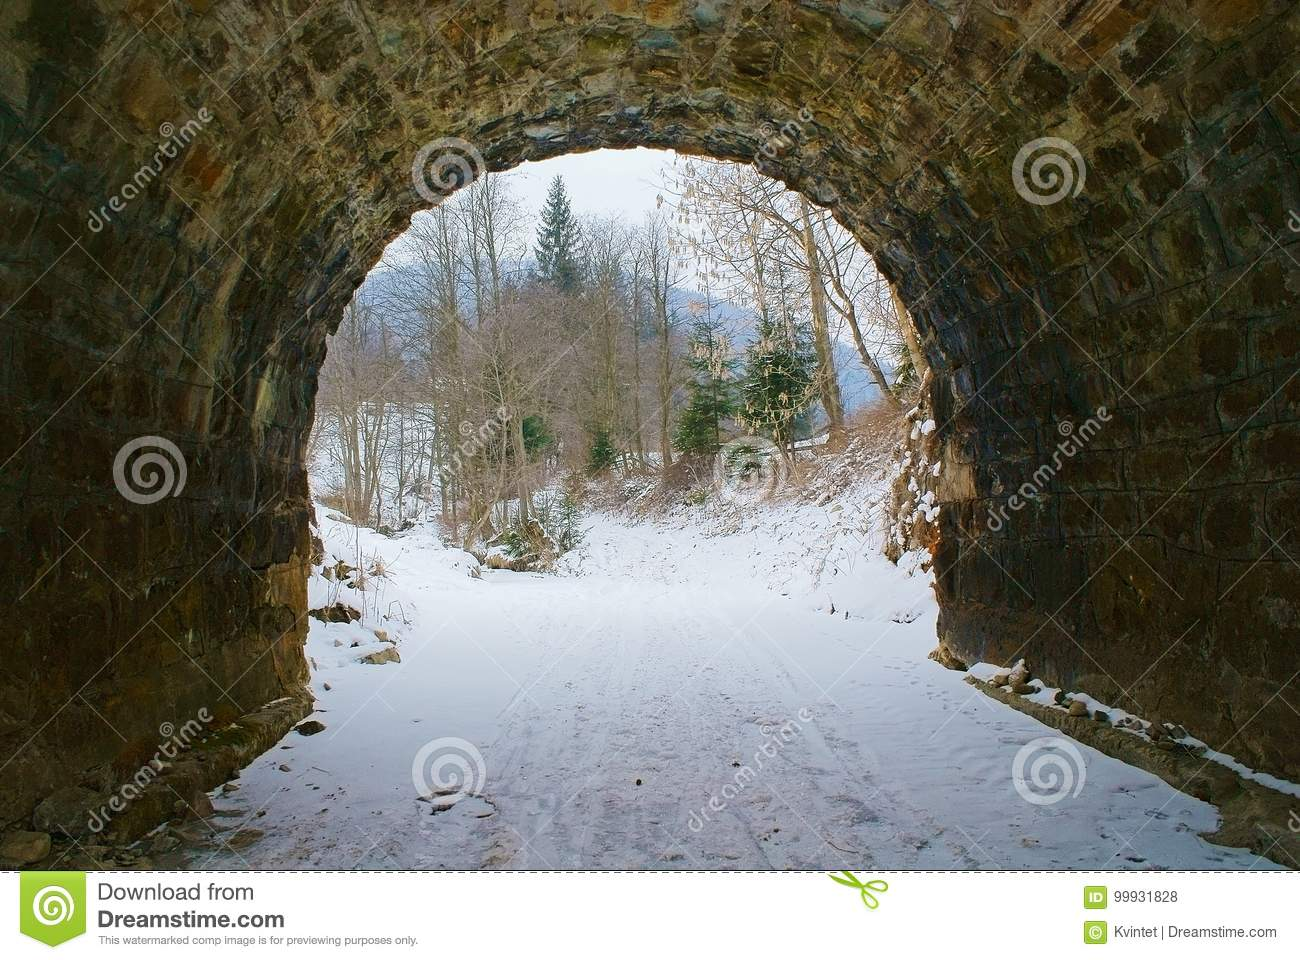 Exit from old stone tunnel to forest